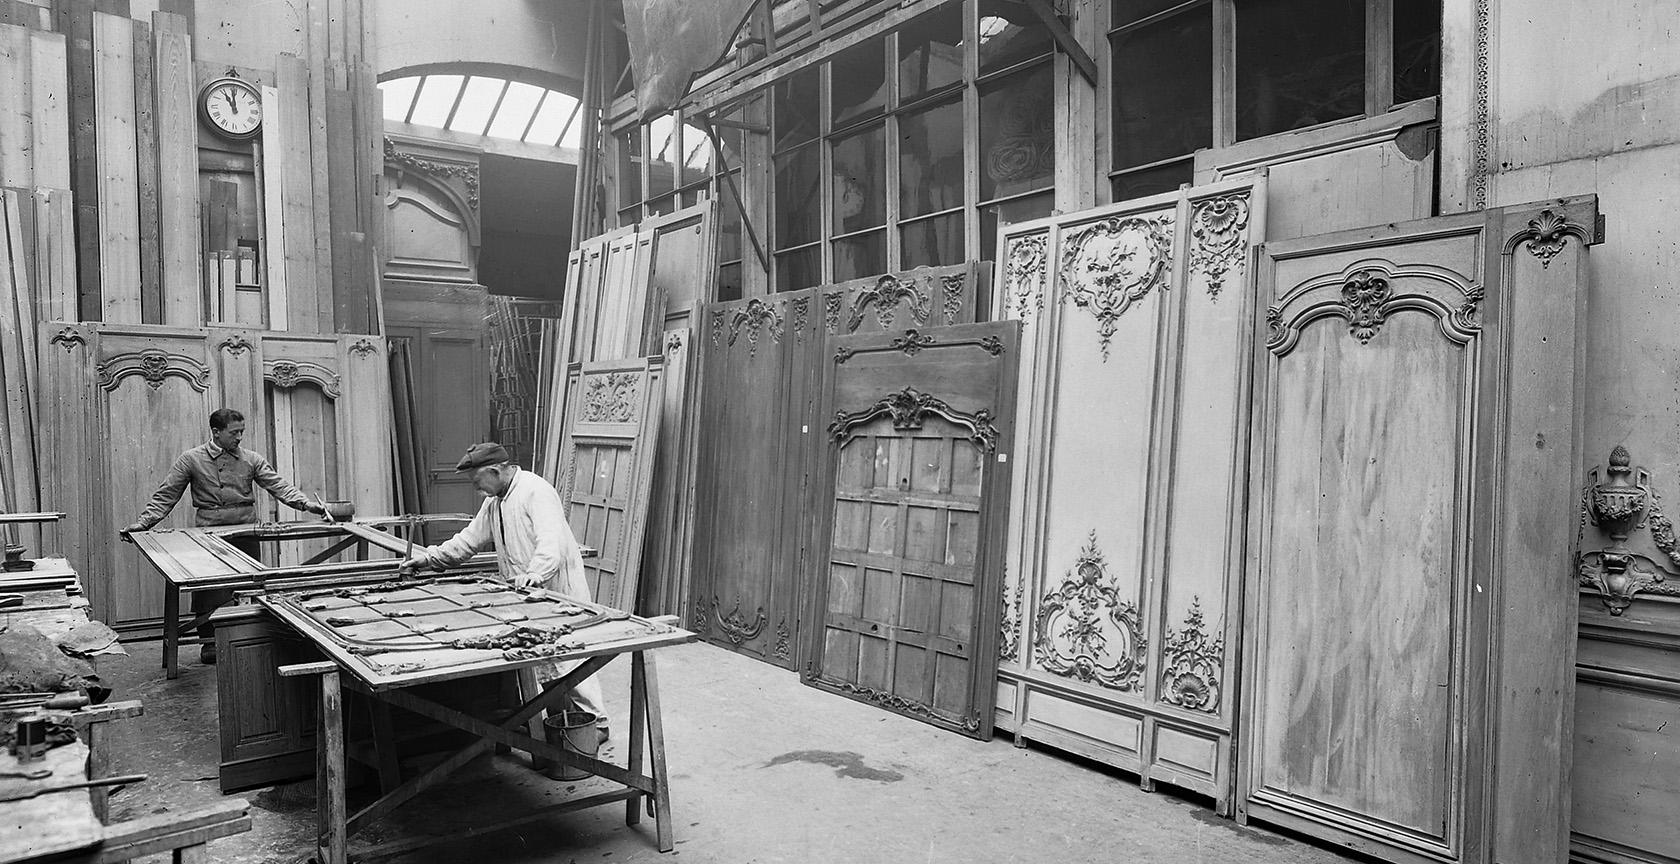 Atelier Feau Boiseries, photo archive, artisanat d'art, boiseries anciennes, rue Laugier, Paris